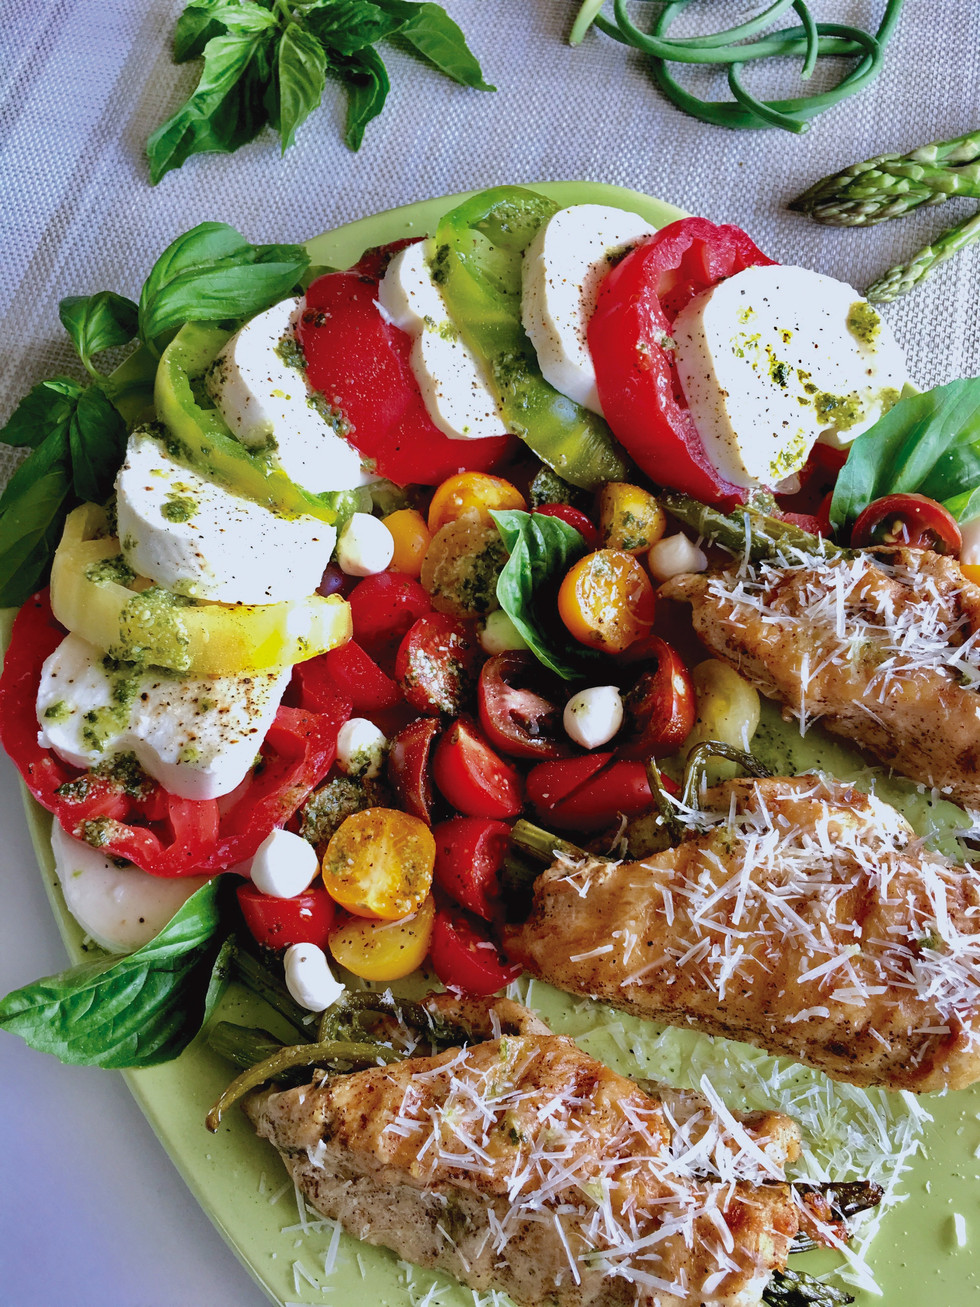 Asparagus Stuffed Chicken Breast & Caprese Salad